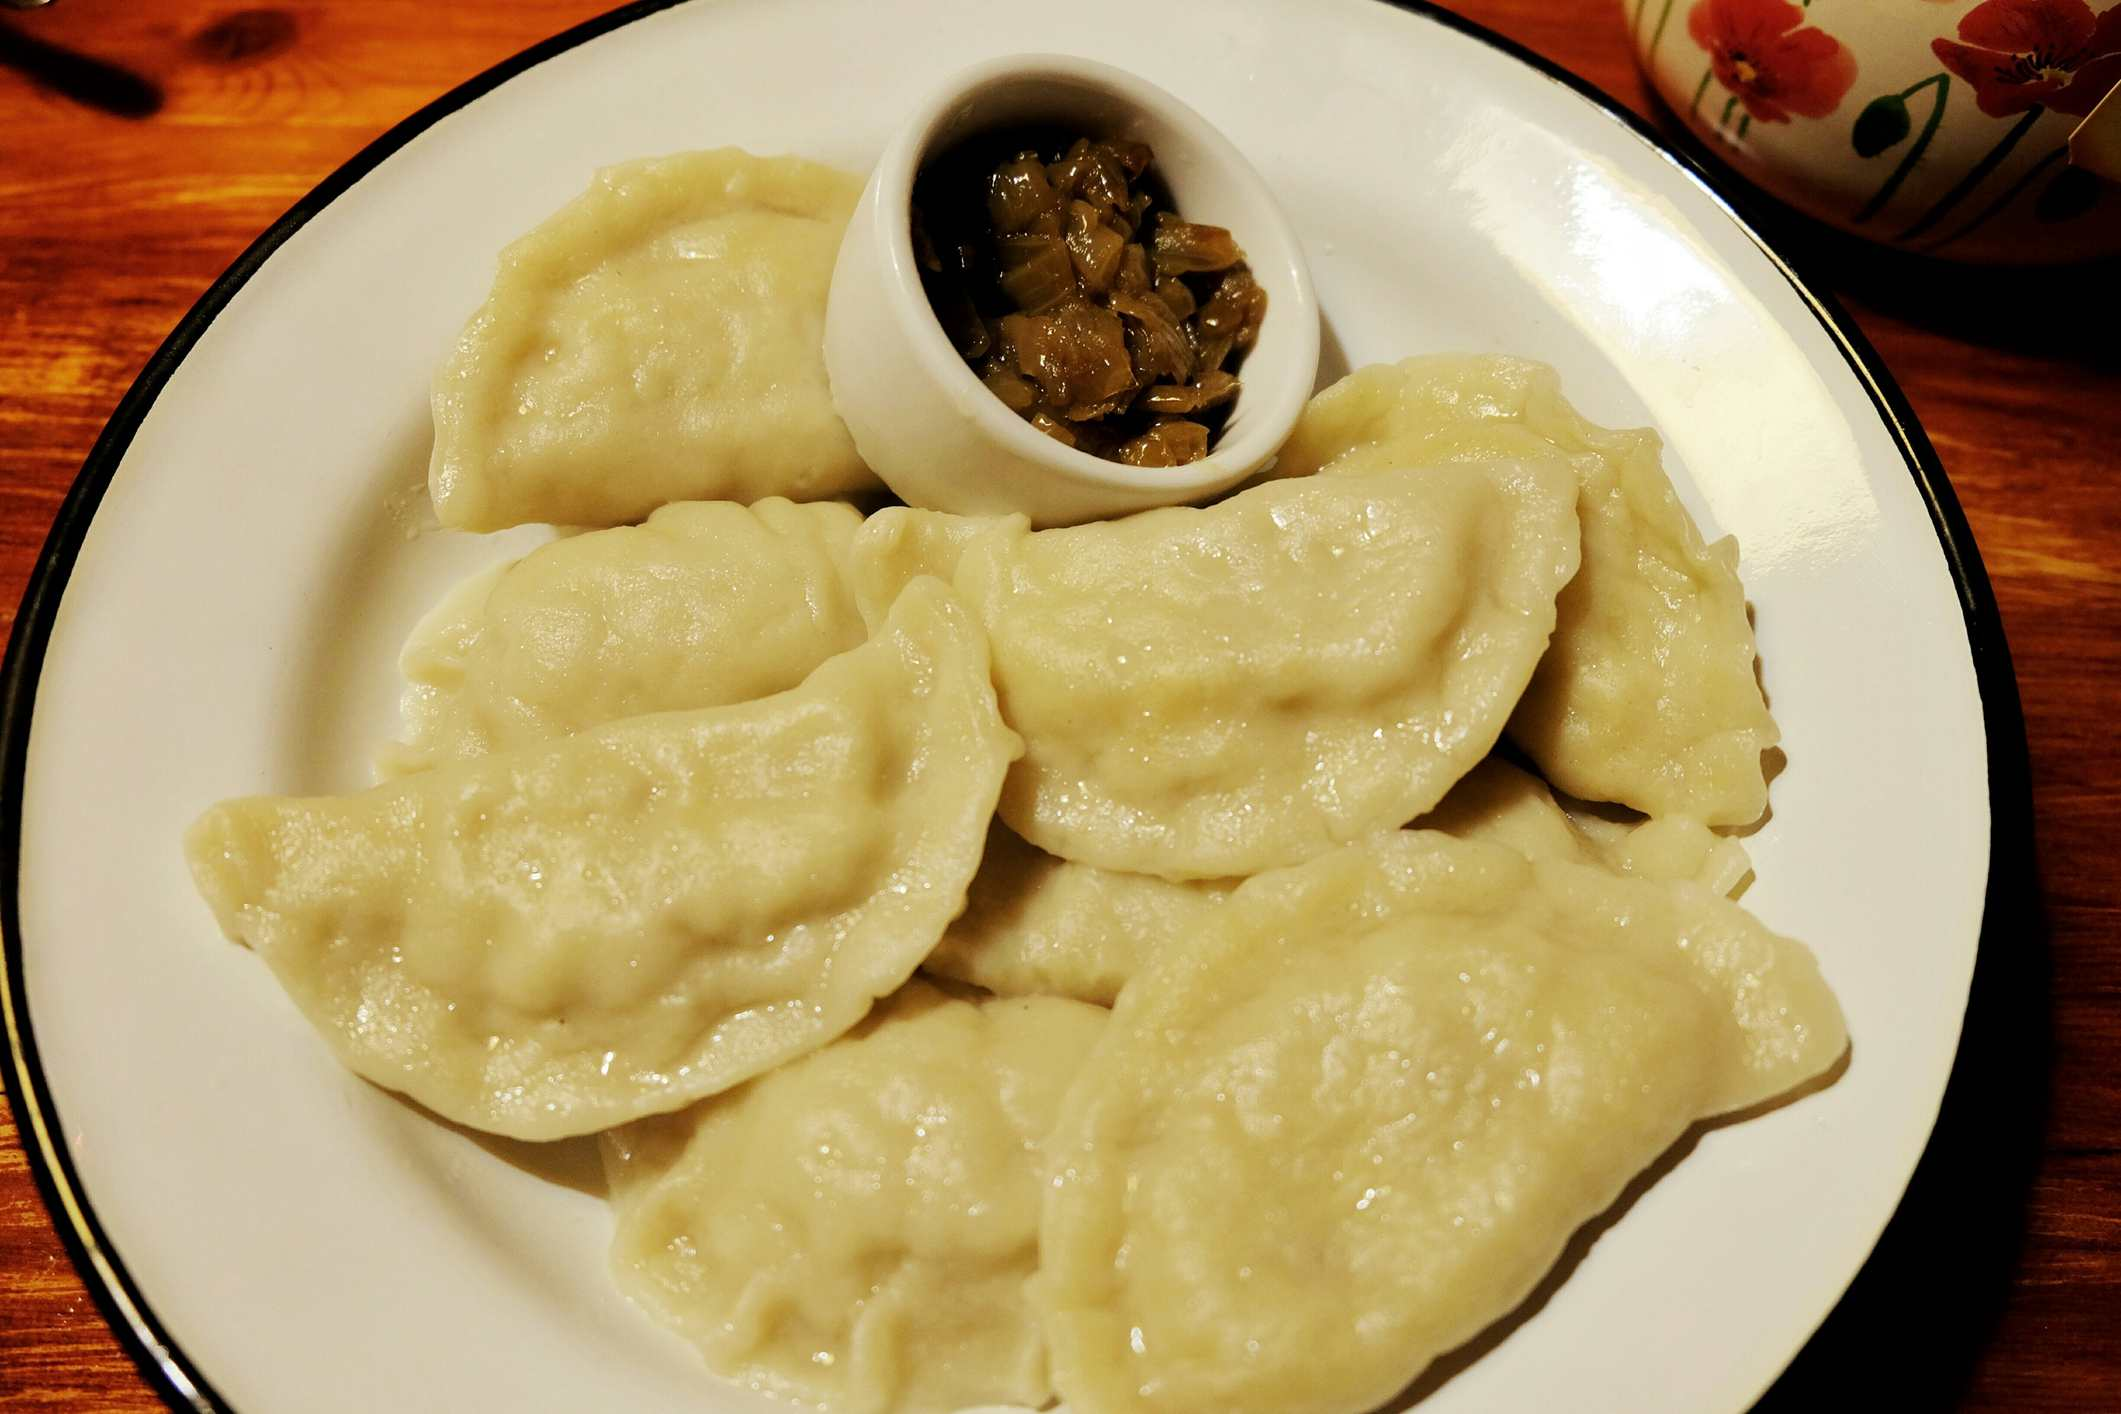 High Angle View Of Pierogi Served In Plate On Wooden Table